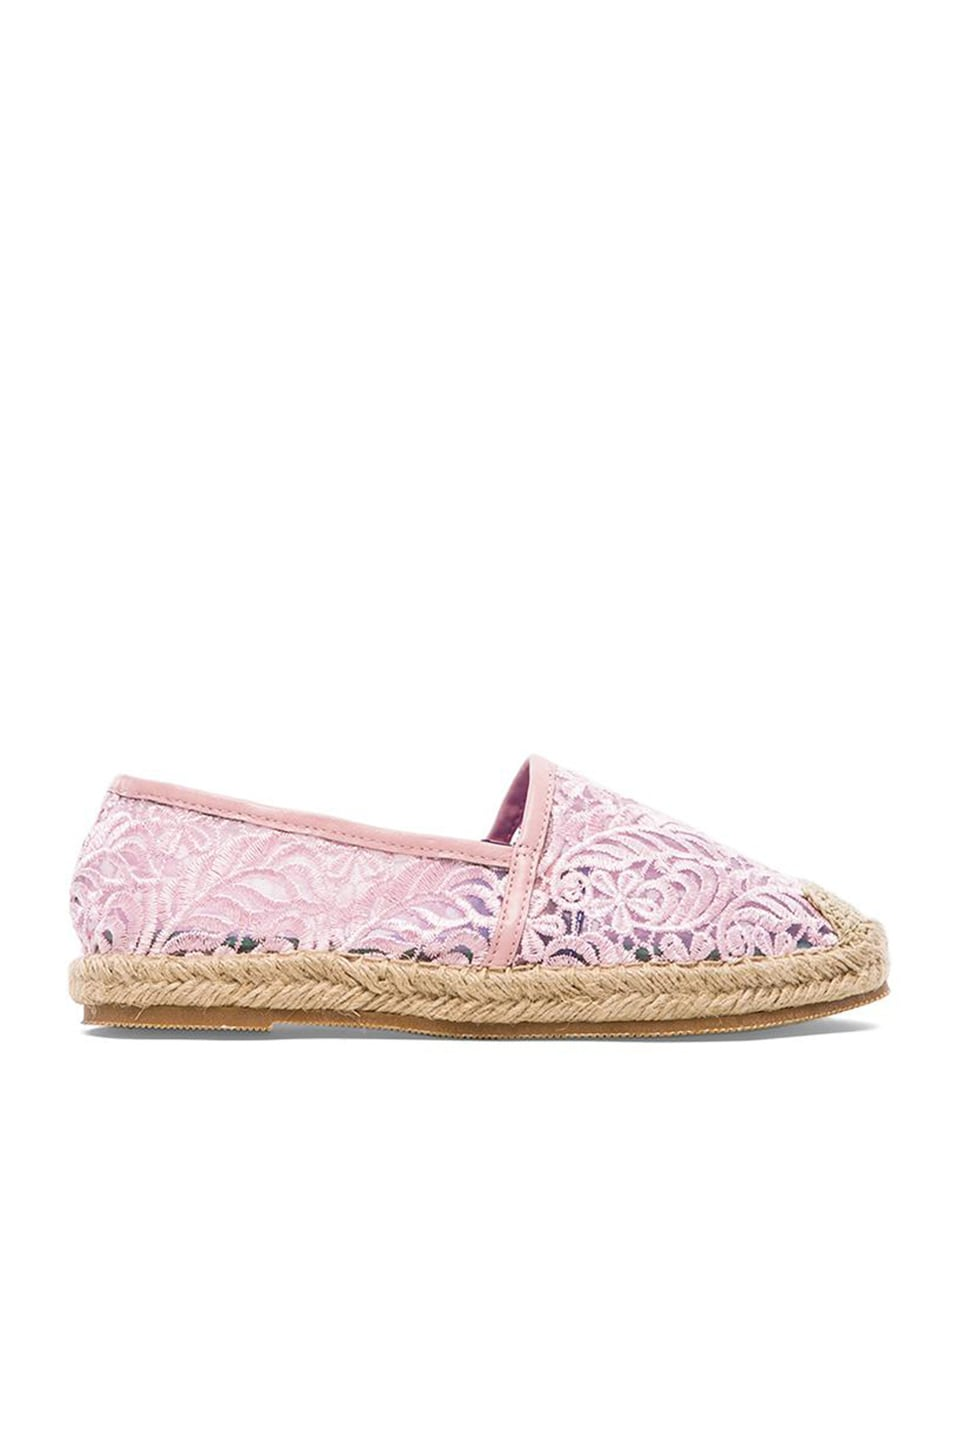 Jeffrey Campbell Nia Flat in Pink Lace